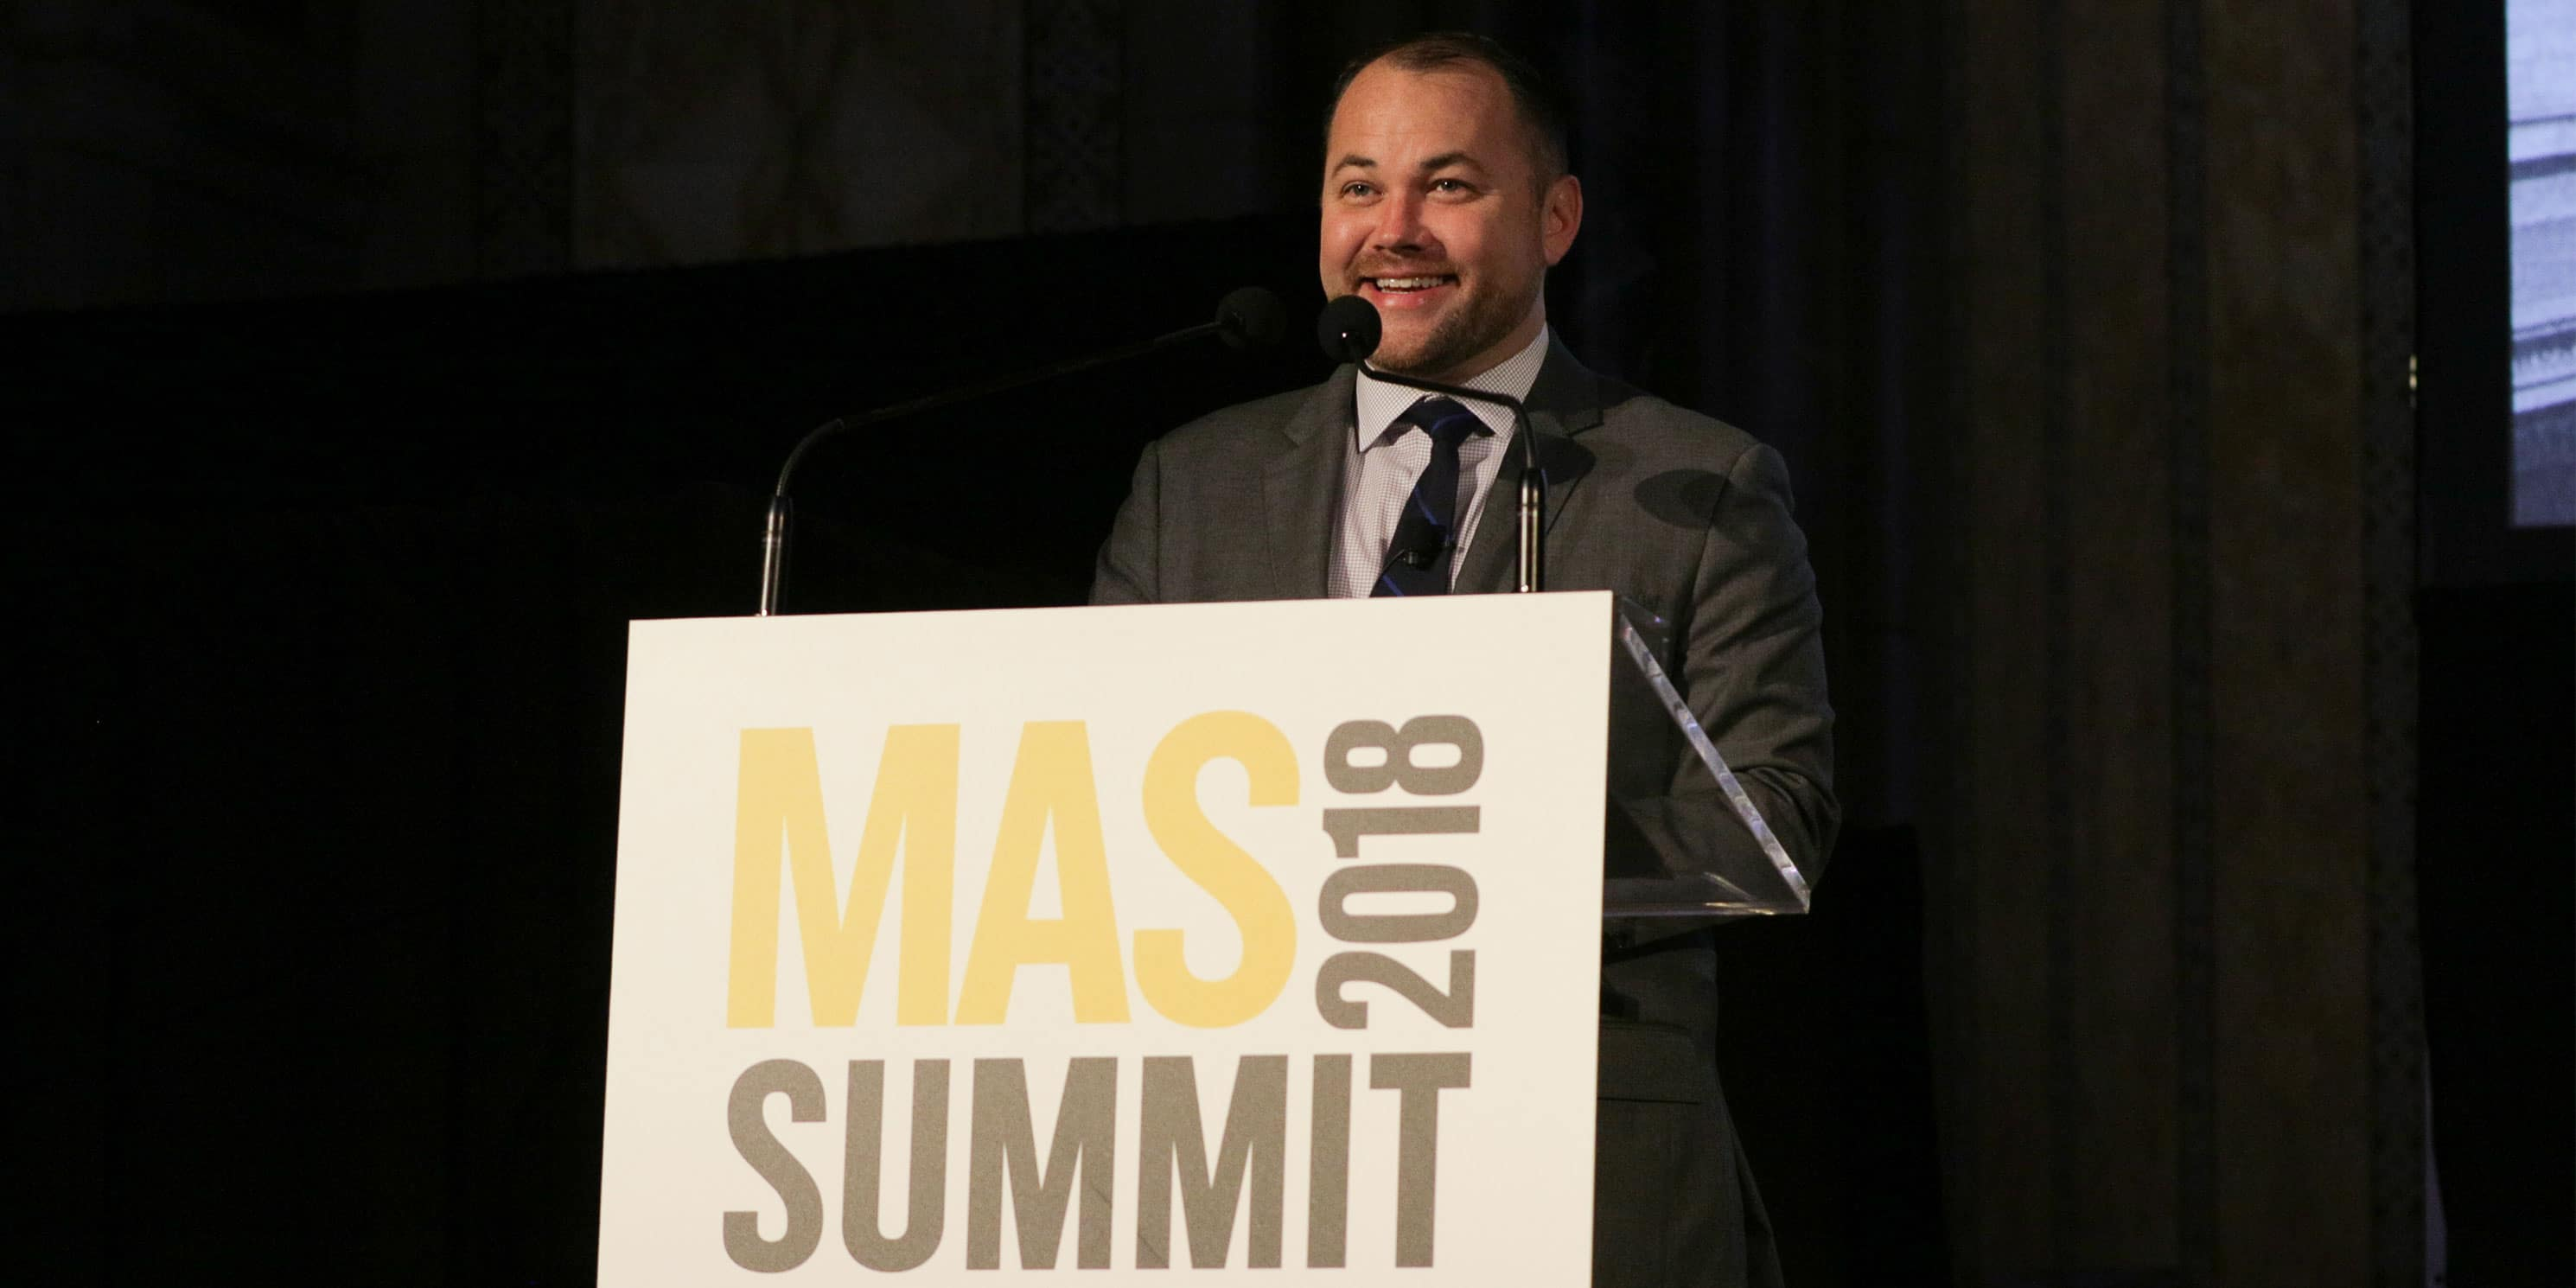 Hon. Corey Johnson speaks at the 2018 Summit